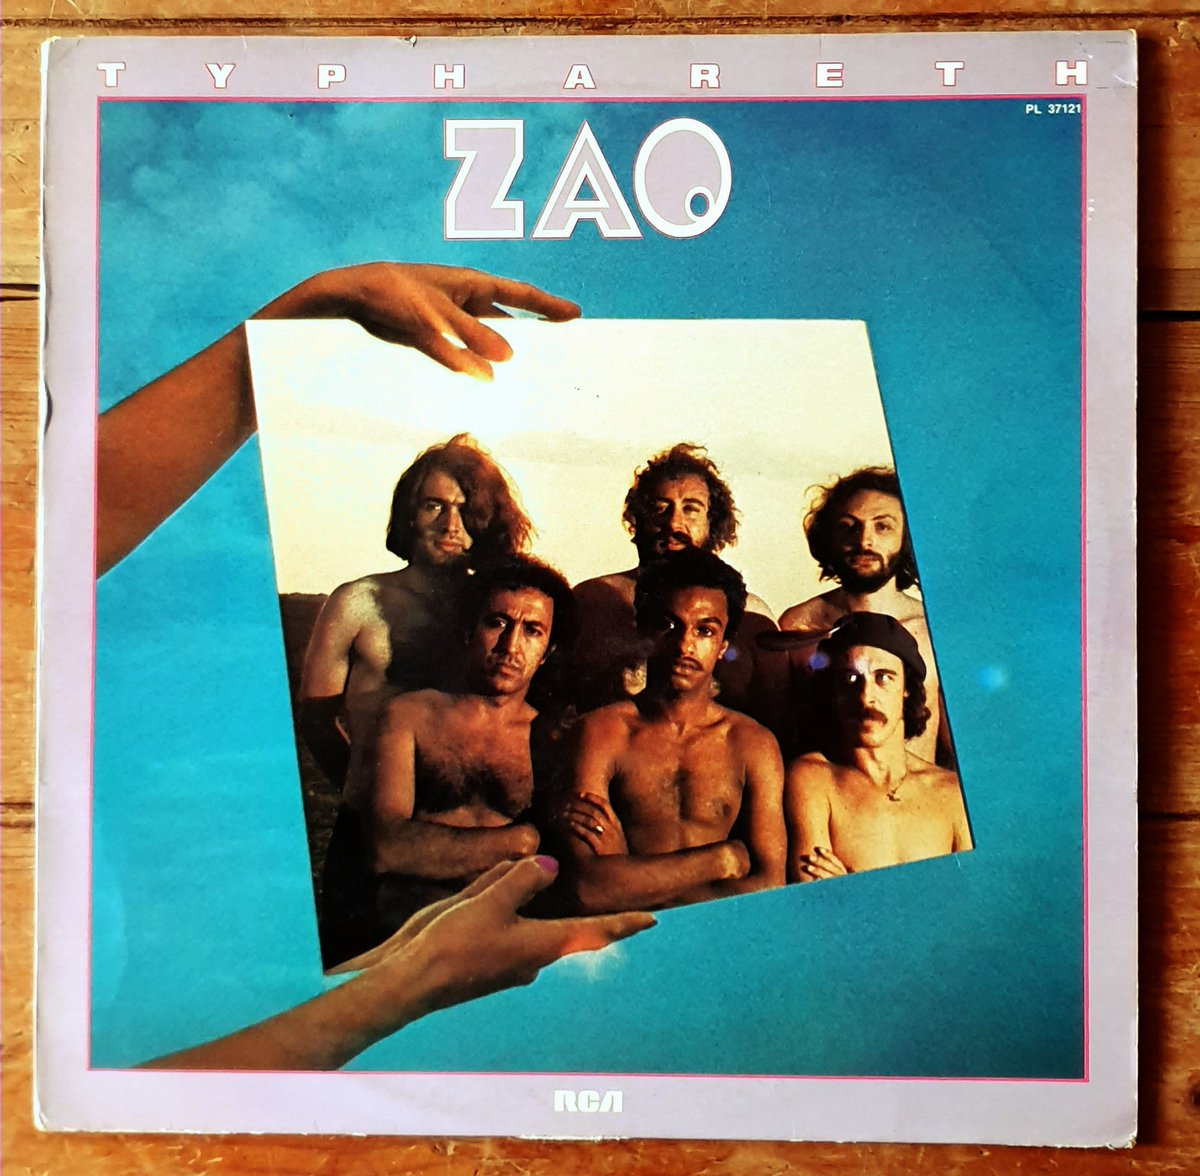 #ZAO – #Typhareth Label: #RCAVictorRecords – PL 37121 Series: #Balance – Format: #Vinyl #LP #Album Country: France Released: #1977s Genre: #JazzRock Style: #JazzFusion #Experimental  #instarecords #instavinyl #vinylrecordcollection #fusionoftheday #drums #percussions #70s pic.twitter.com/bk3qnukWv0